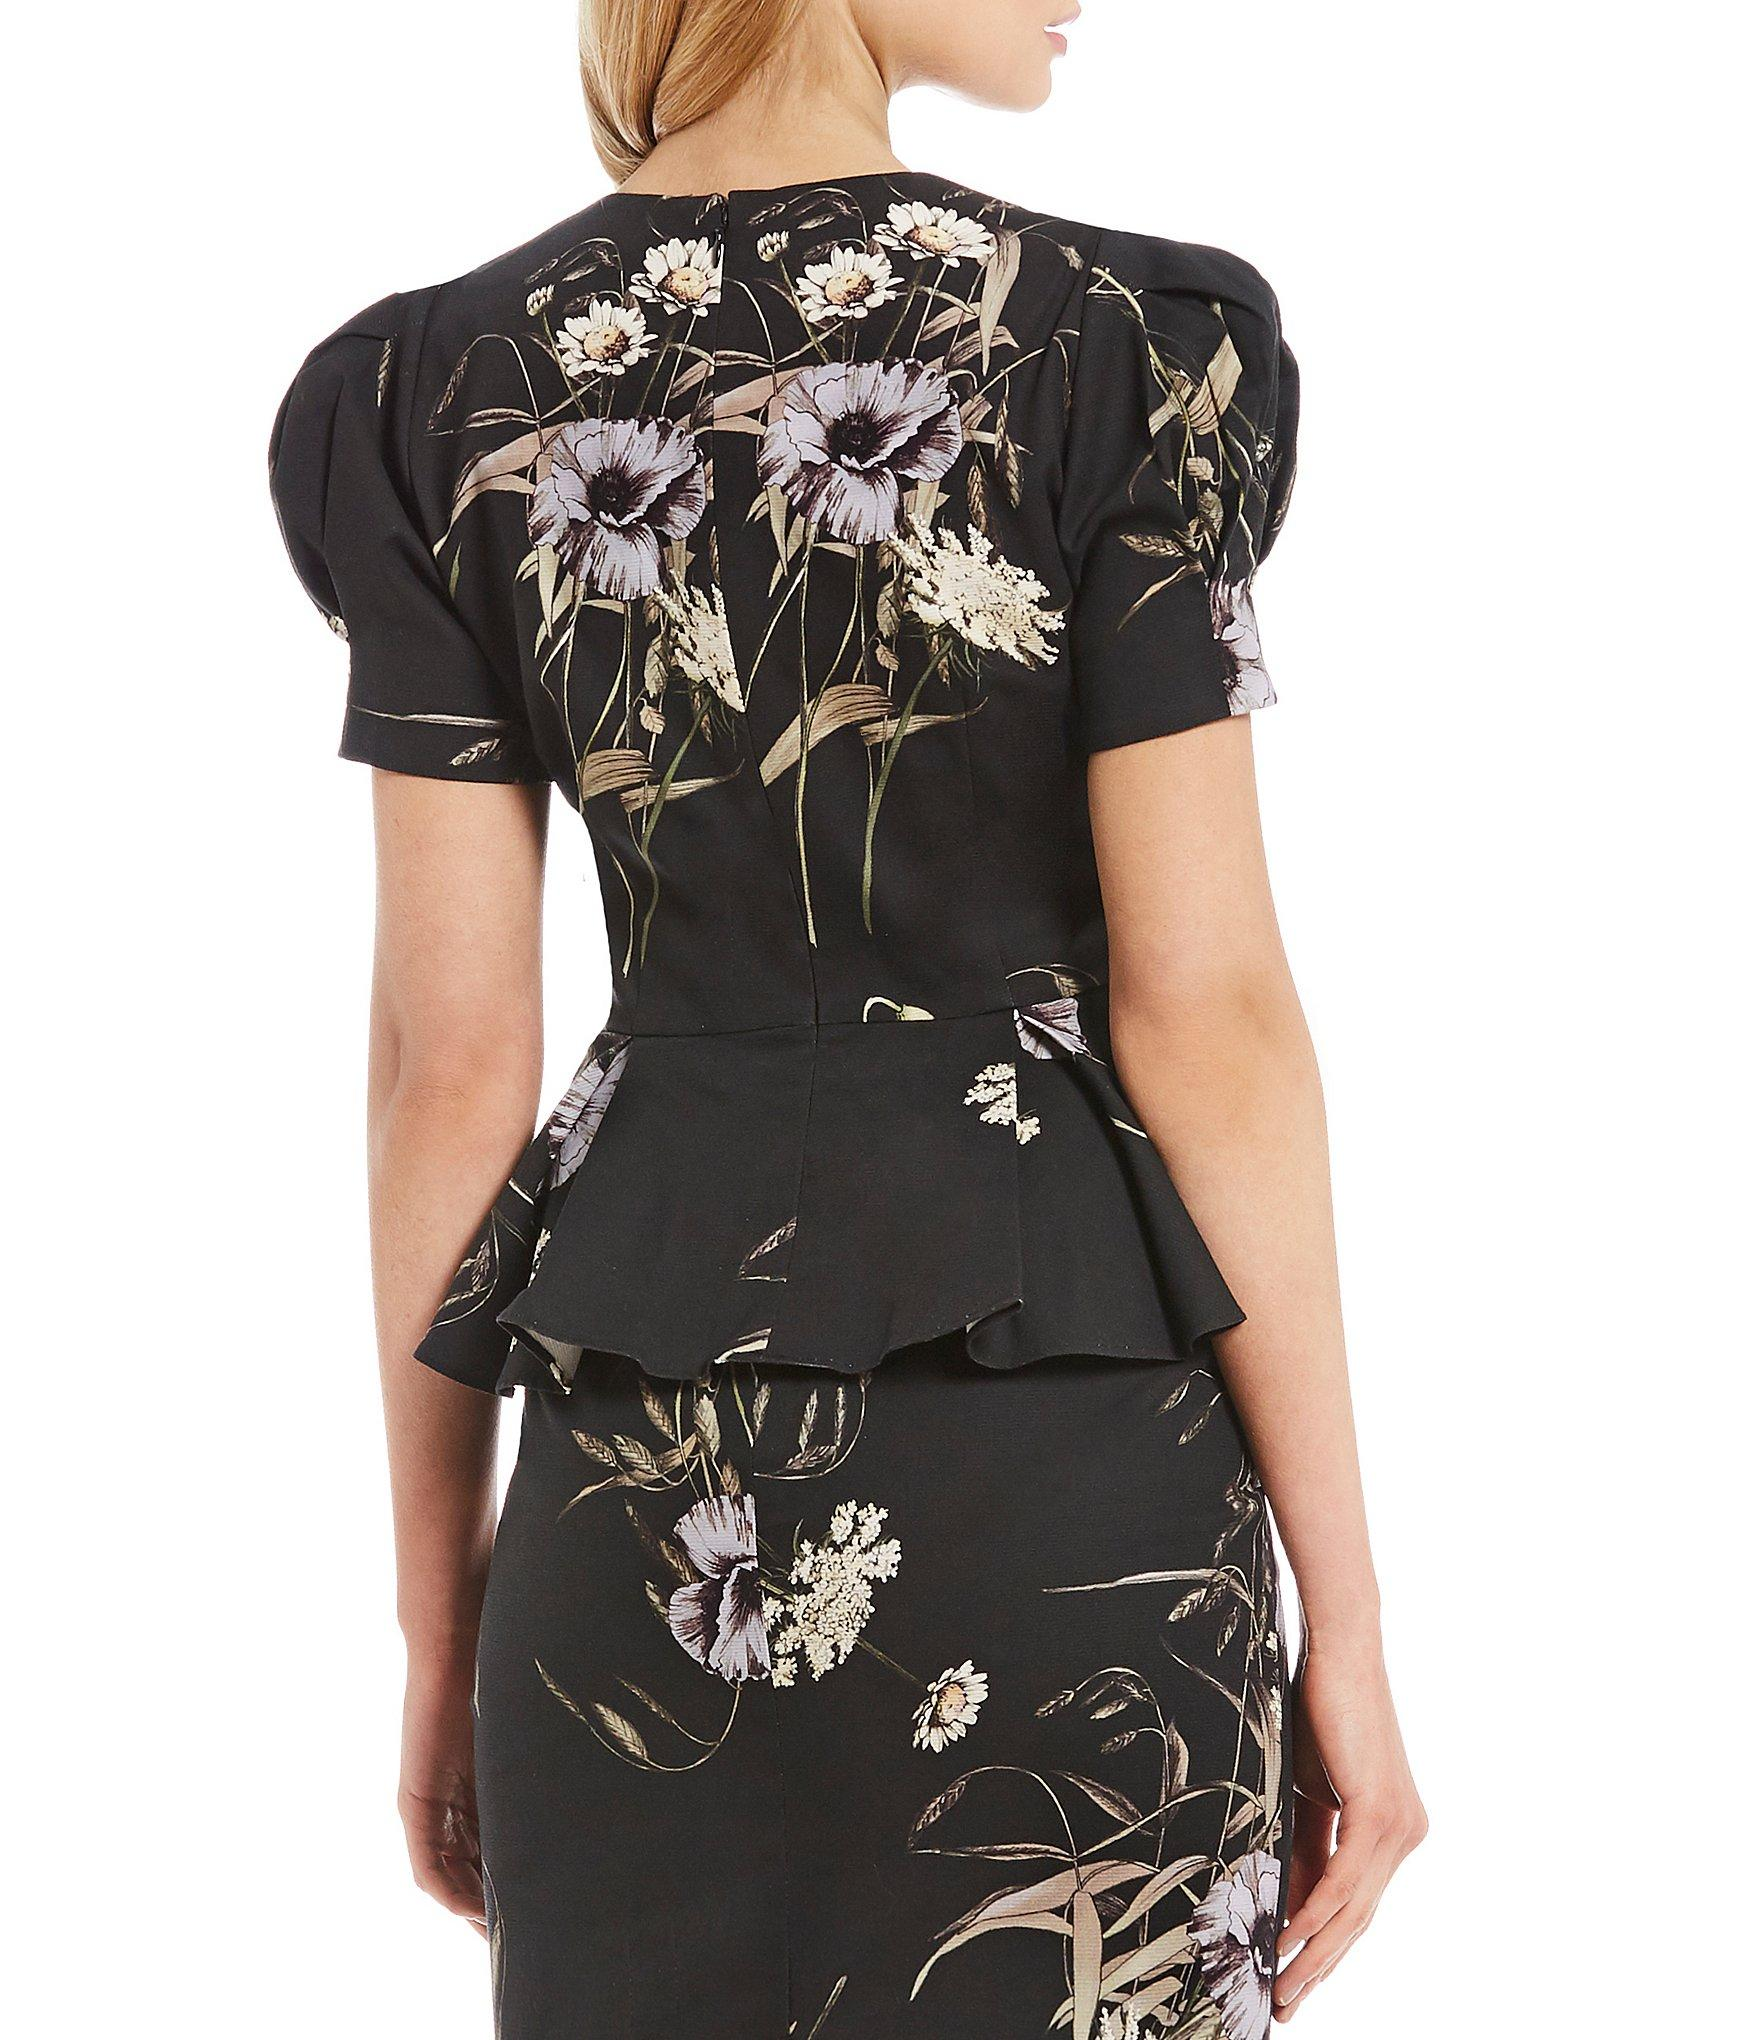 f7dfaa2254a Antonio Melani - Black Randi Floral Print Puffed Statement Shoulder Peplum  Blouse - Lyst. View fullscreen